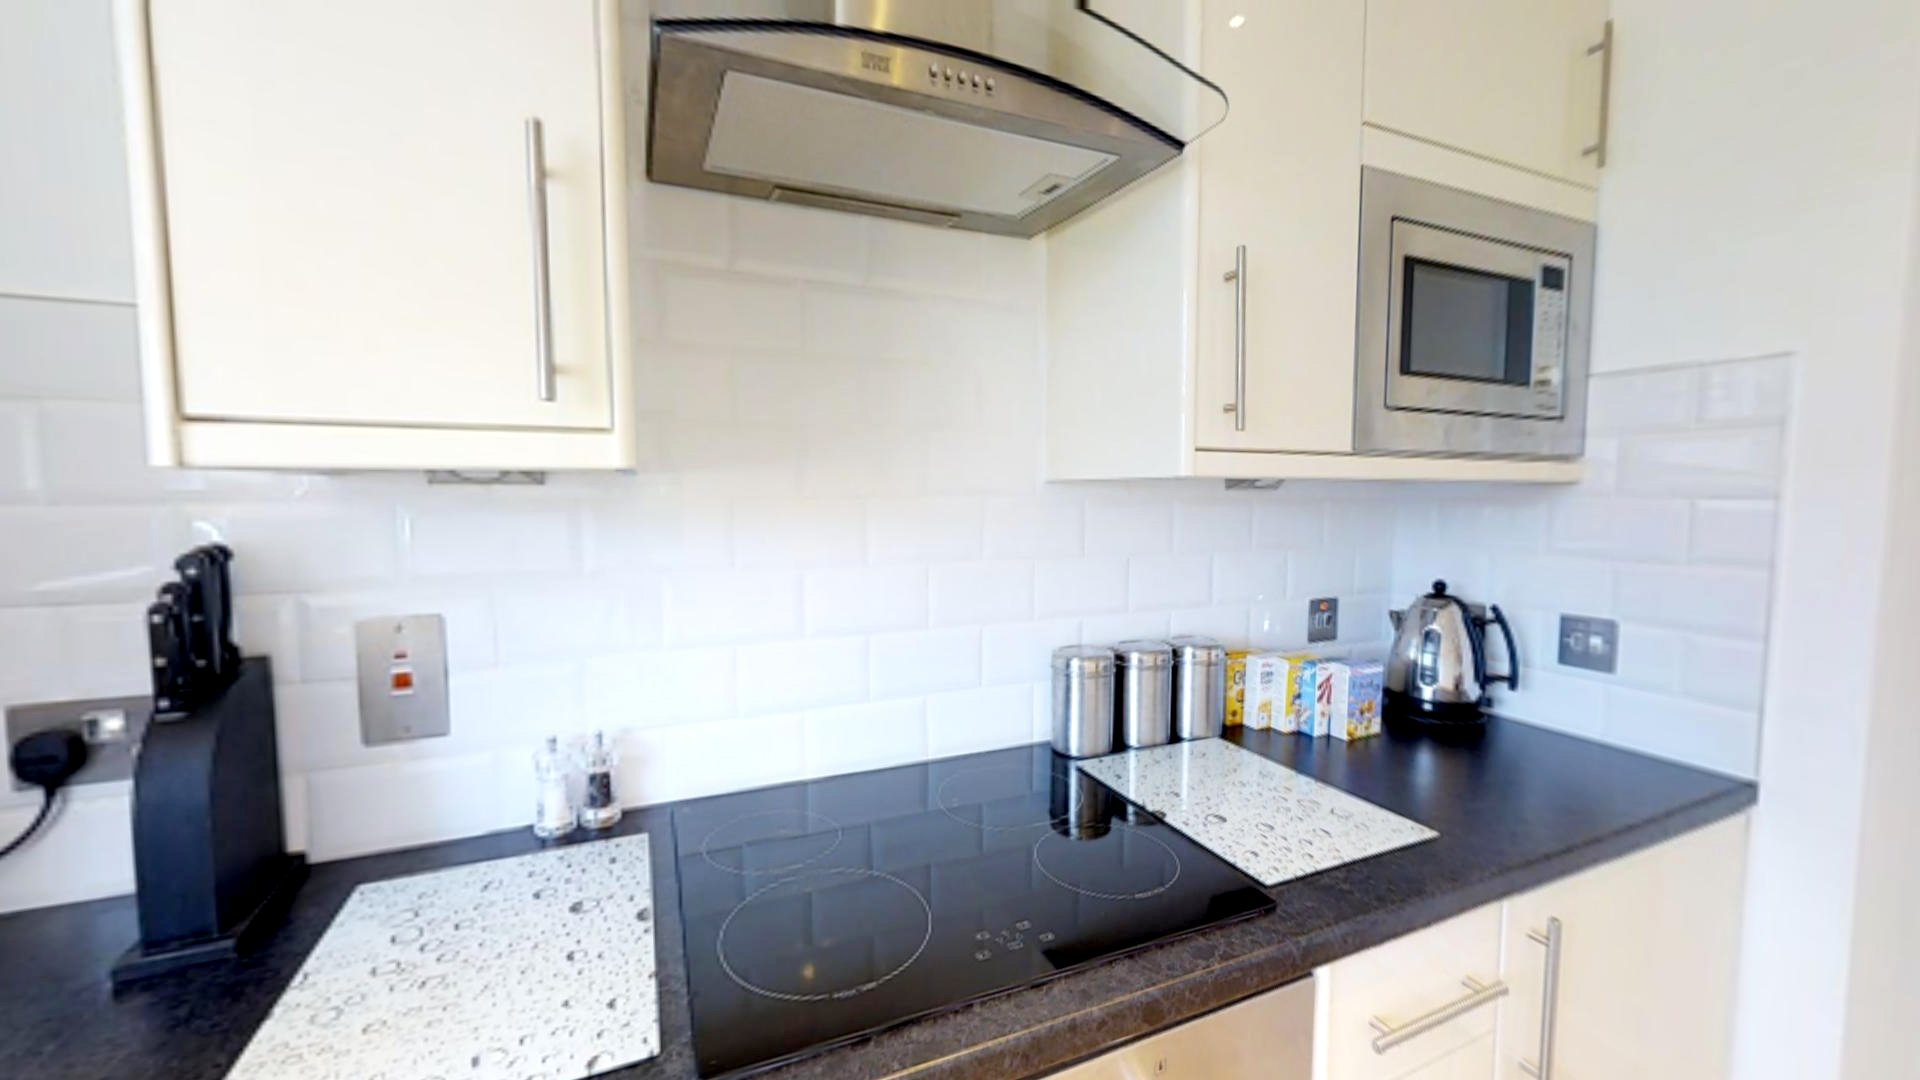 Looking-for-affordable-apartments-near-Cambridge-University?-why-not-book-our-lovely-Cambridge-University-Apartments.-Call-today-for-great-rates.